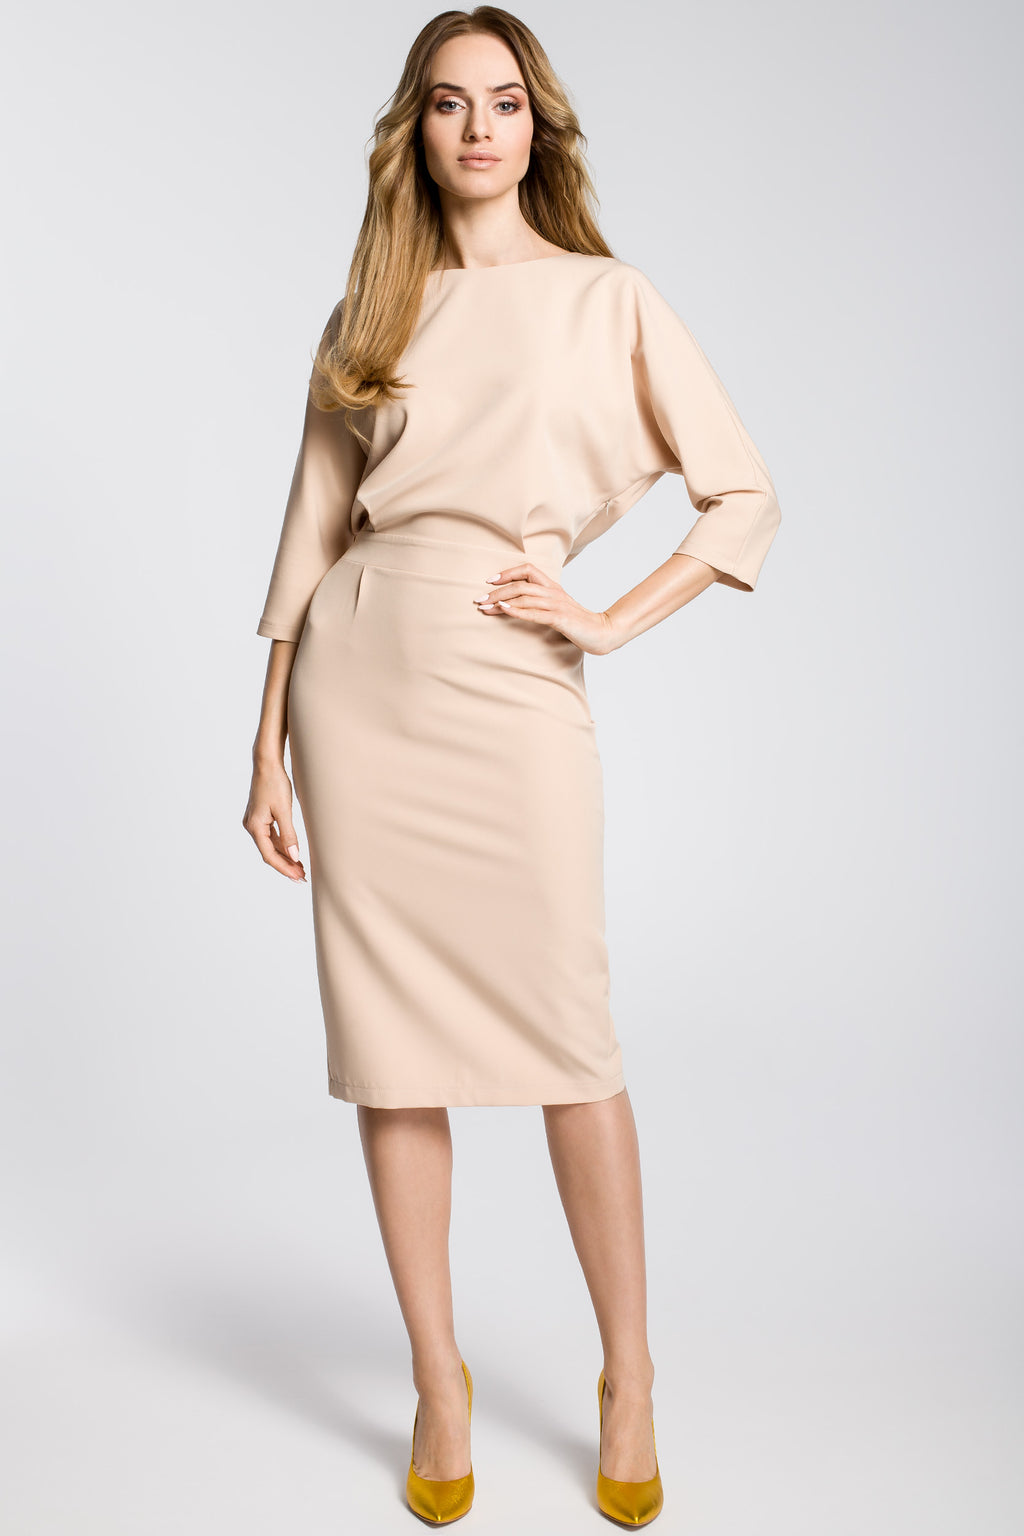 Beige Midi Dress With Loose Fitting Top - So Chic Boutique